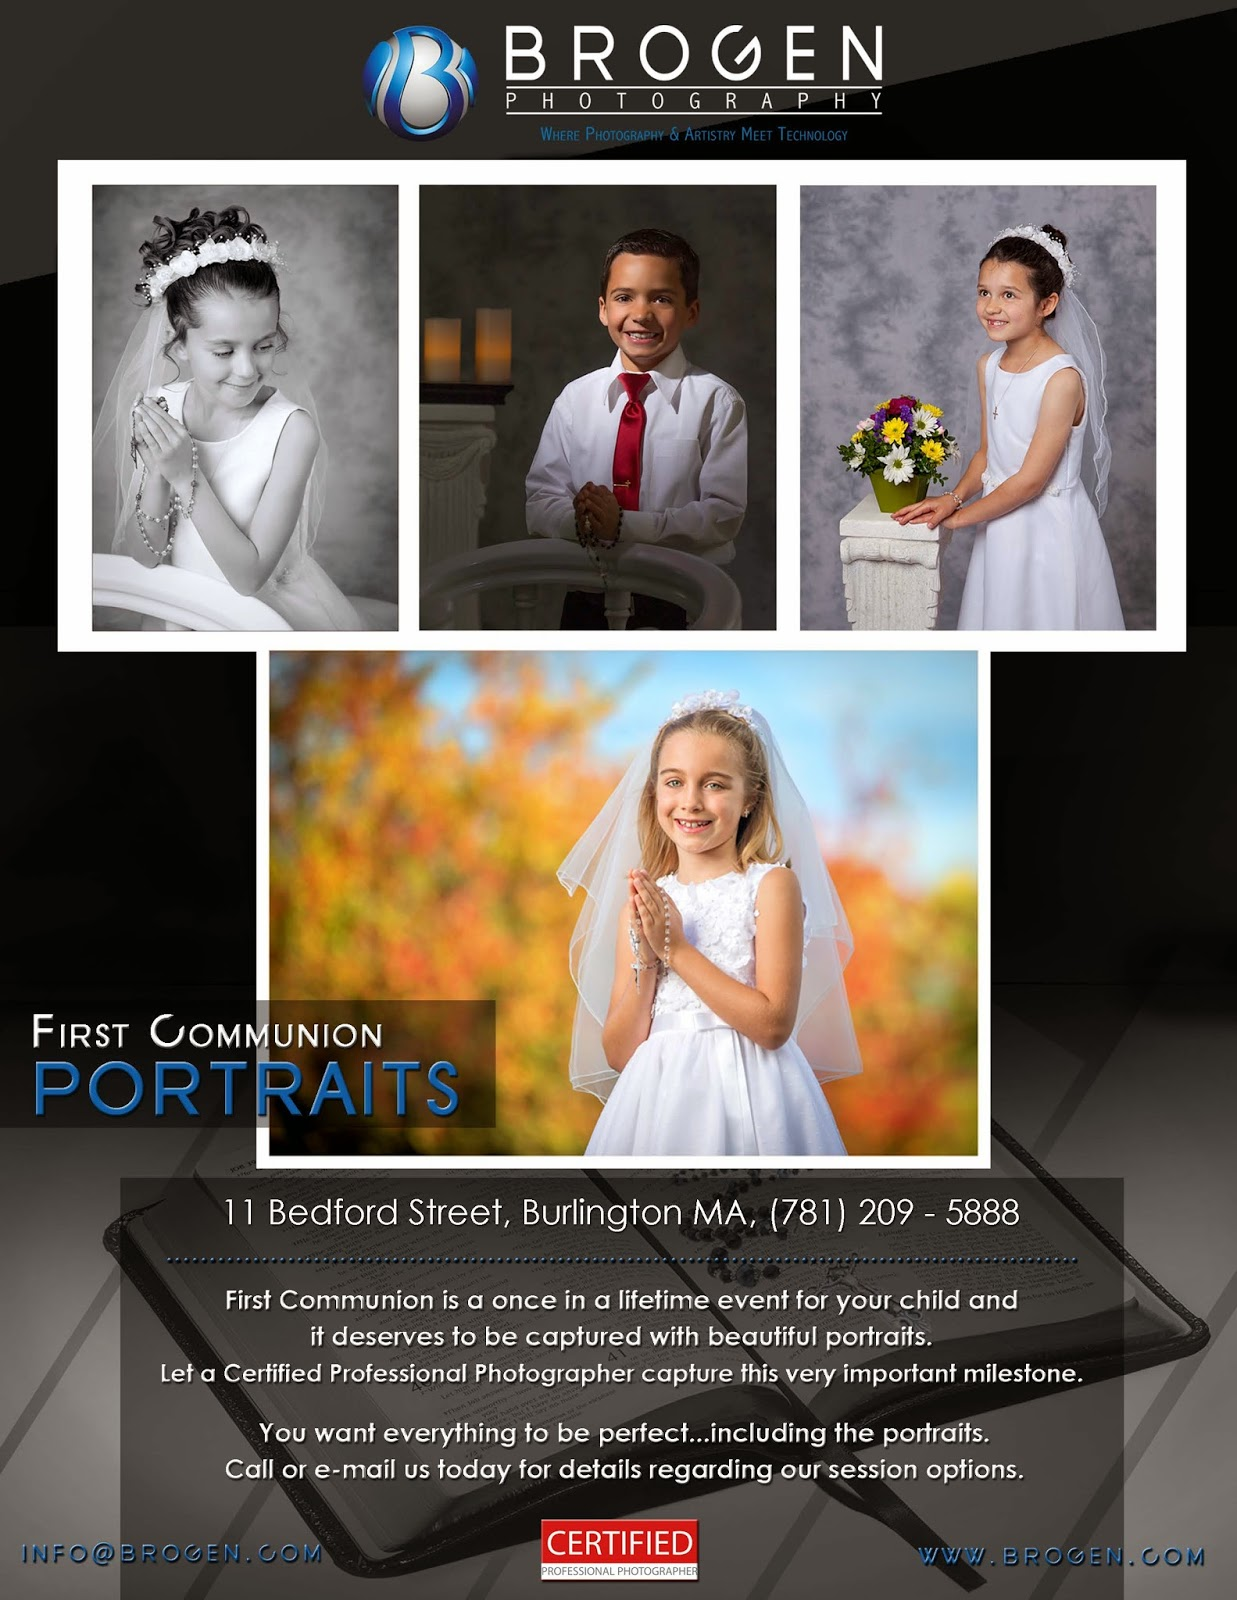 First Communion Portraits, Holy First Communion Portraits, Child Portraits, Senior Portraits, Executive Portraits, Family Portraits